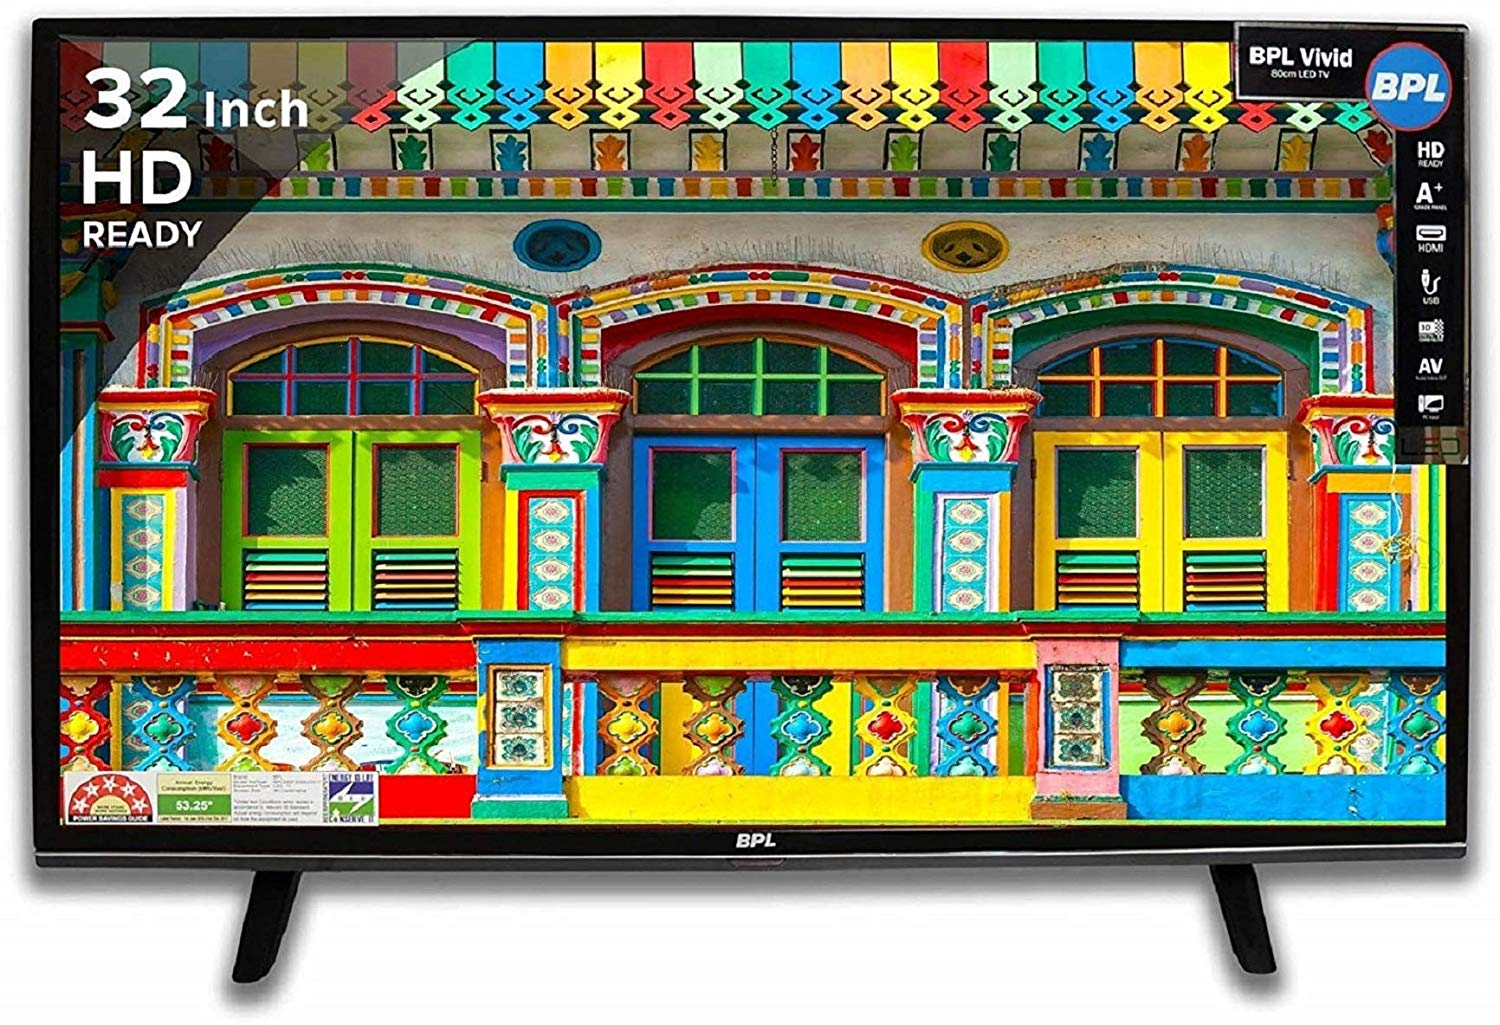 BPL BPL080D51H (32 Inches) HD Ready LED TV